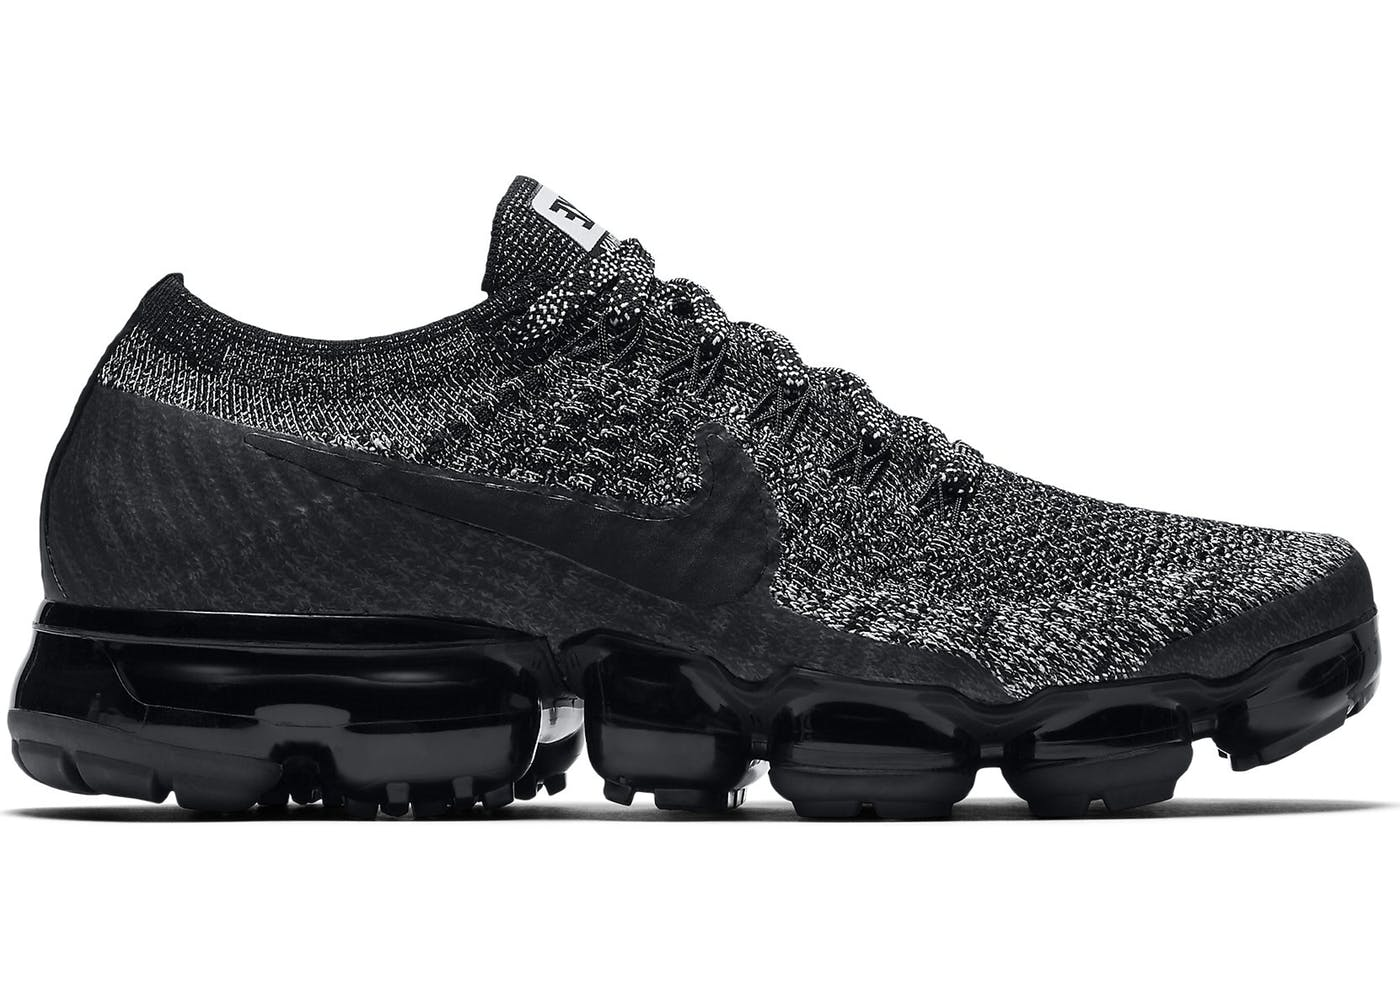 Women's Nike Air VaporMax 'Black/Anthracite'. Nike Launch DK